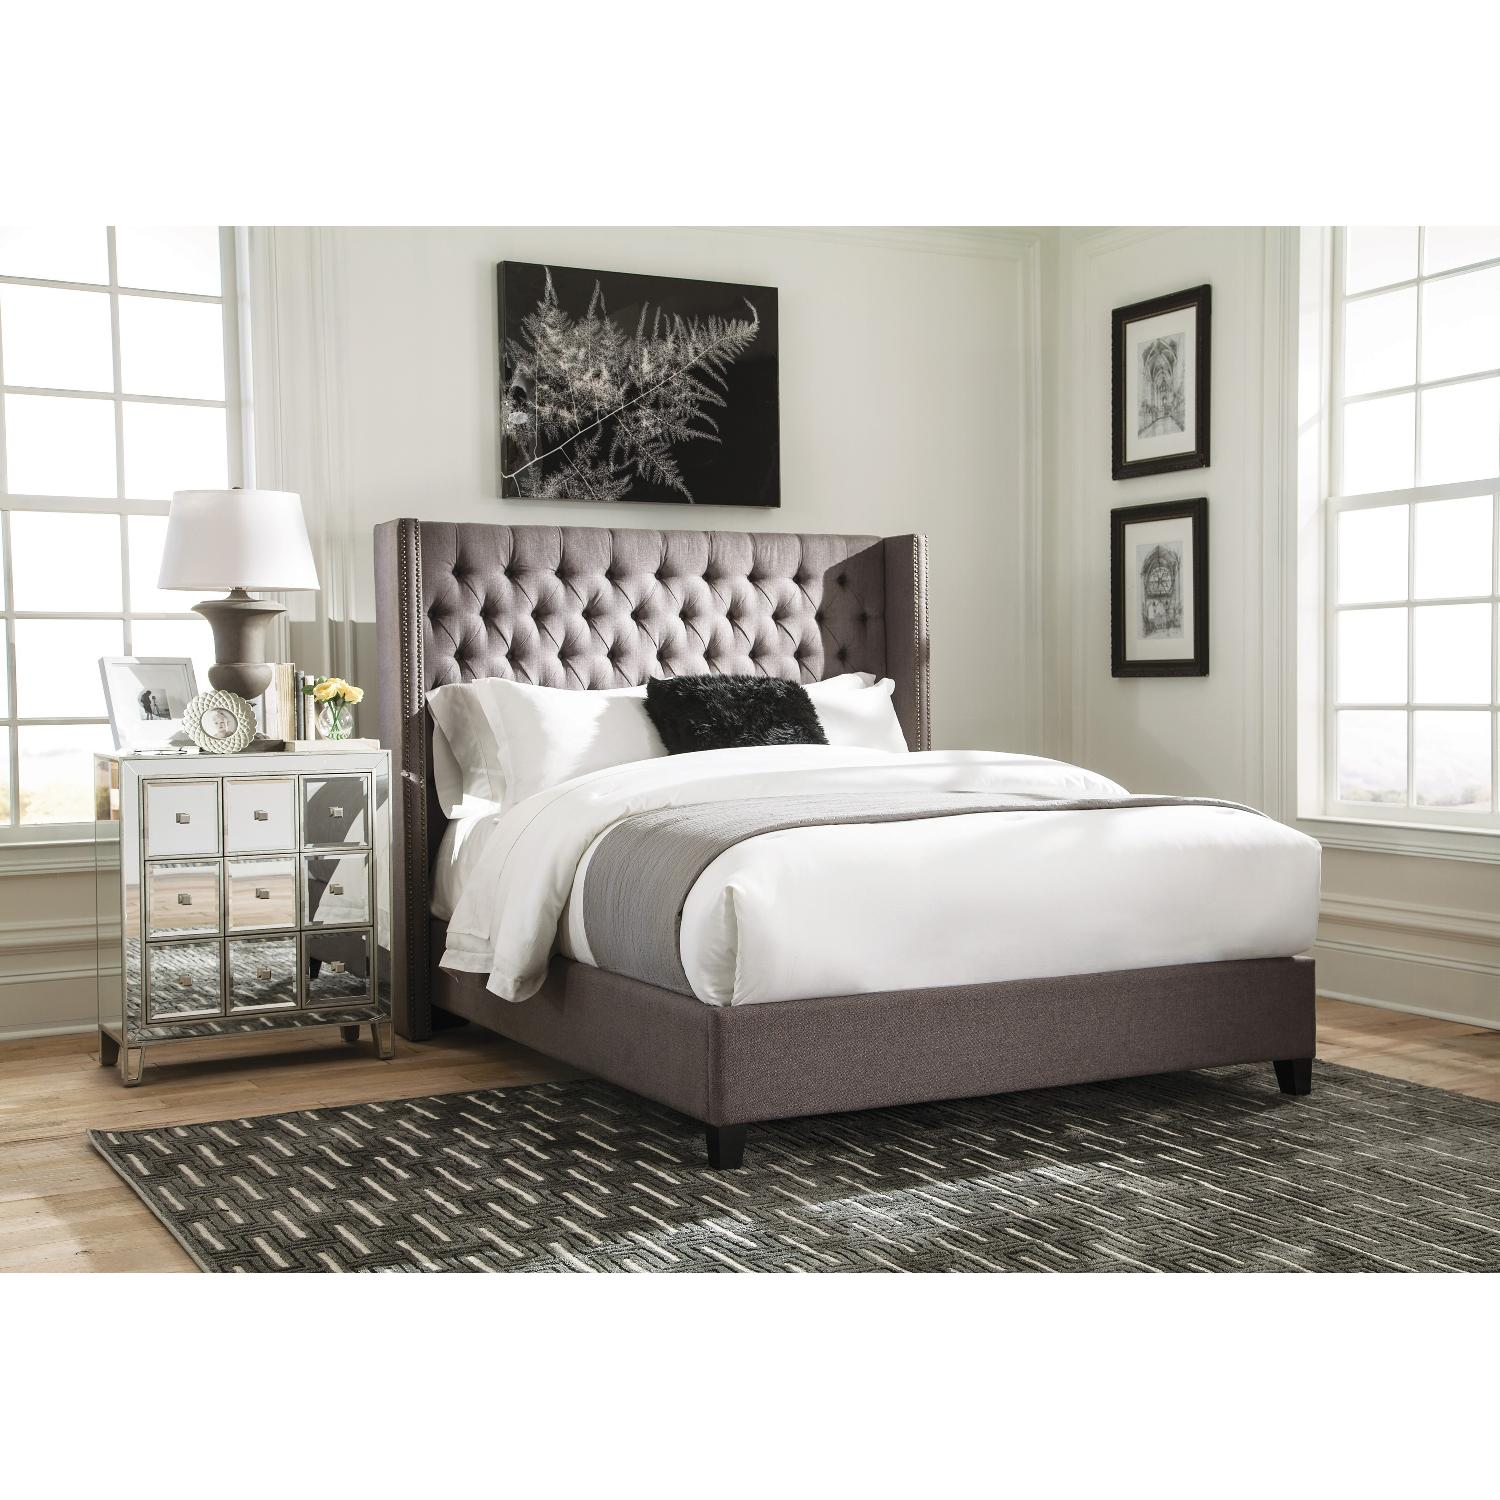 Modern Demi Wing Queen Bed in Grey w/ Nailhead Accent - image-4